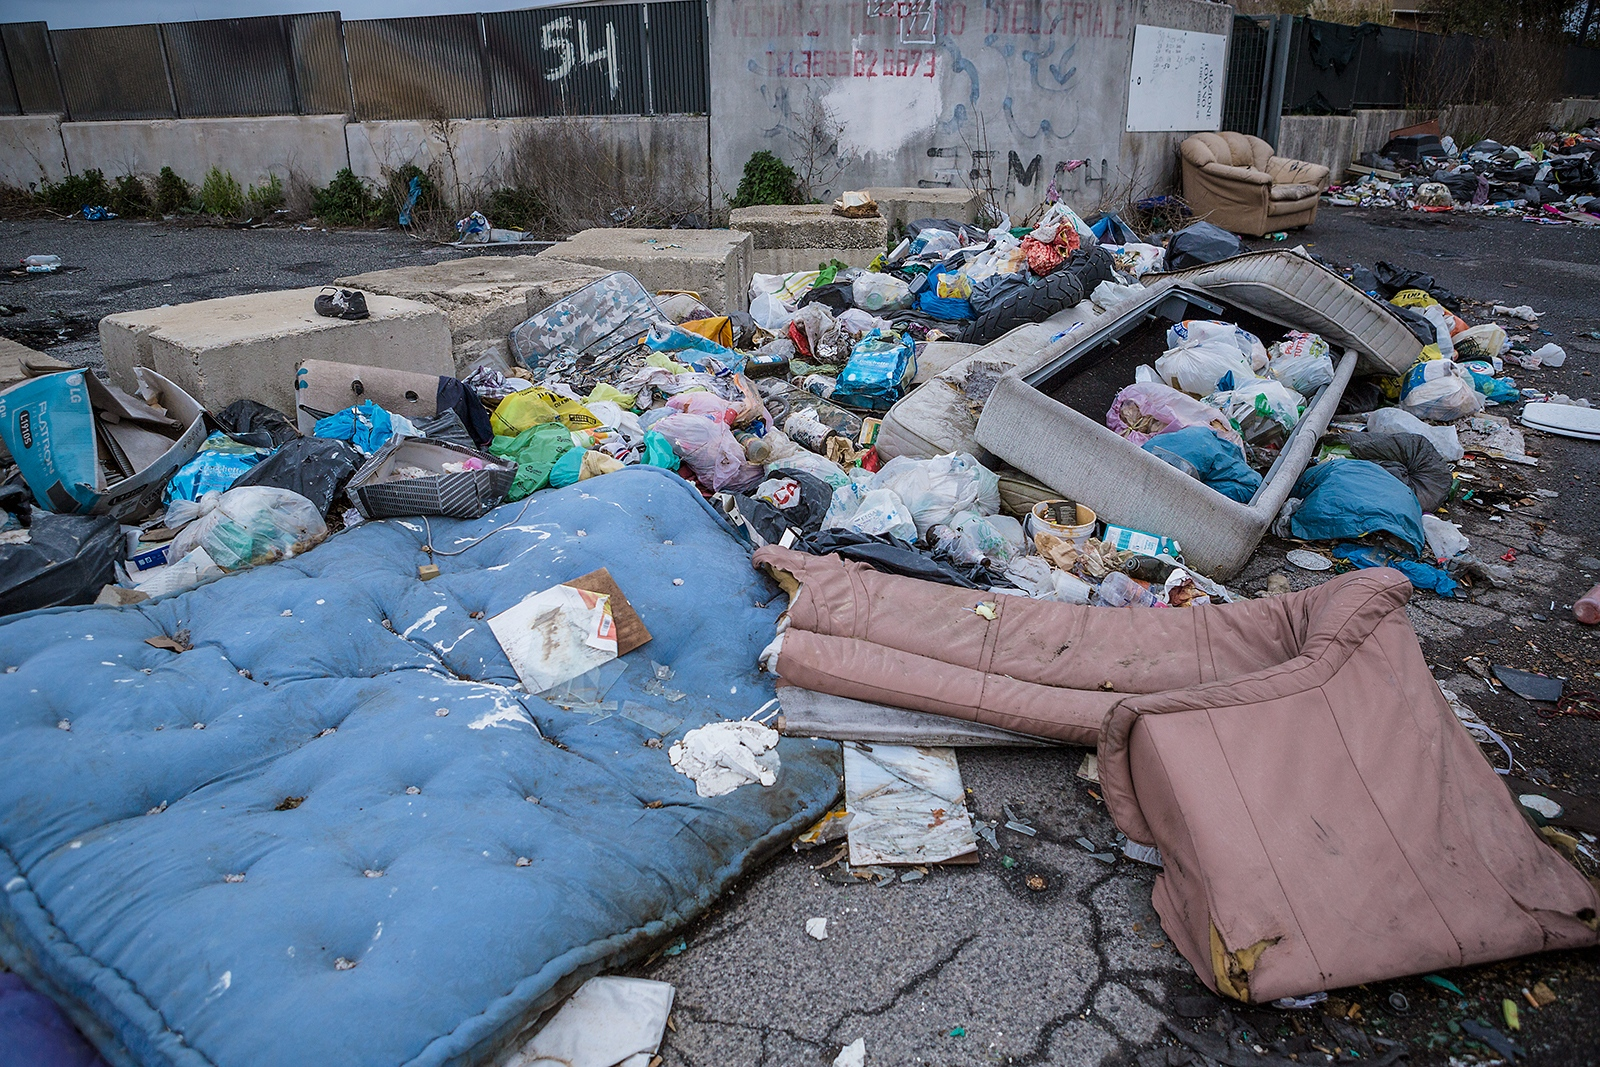 Abandoned garbage and illegal dumping